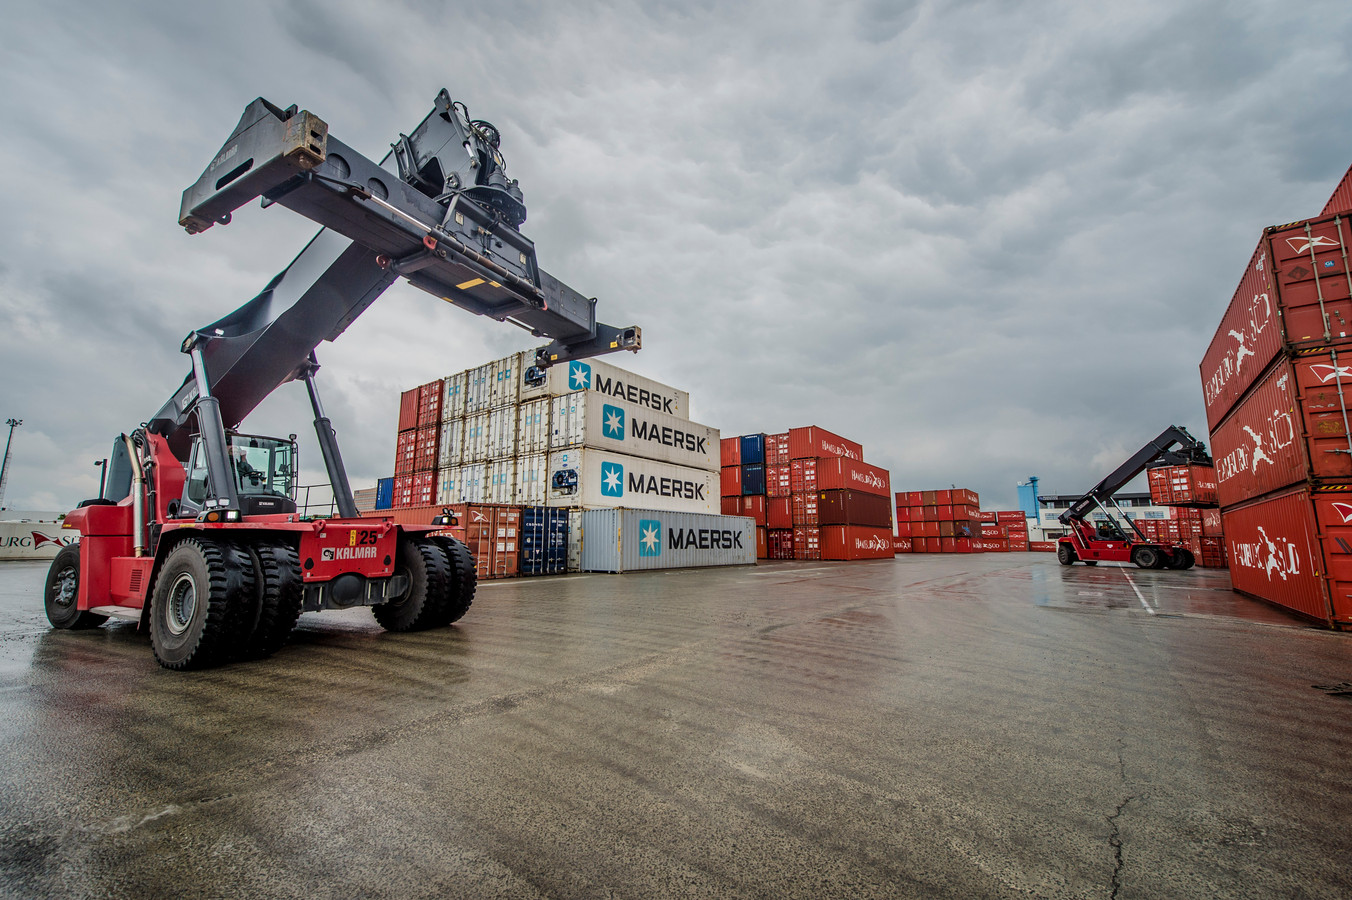 Containerverkeer in de haven van Antwerpen. Beeld ter illustratie.